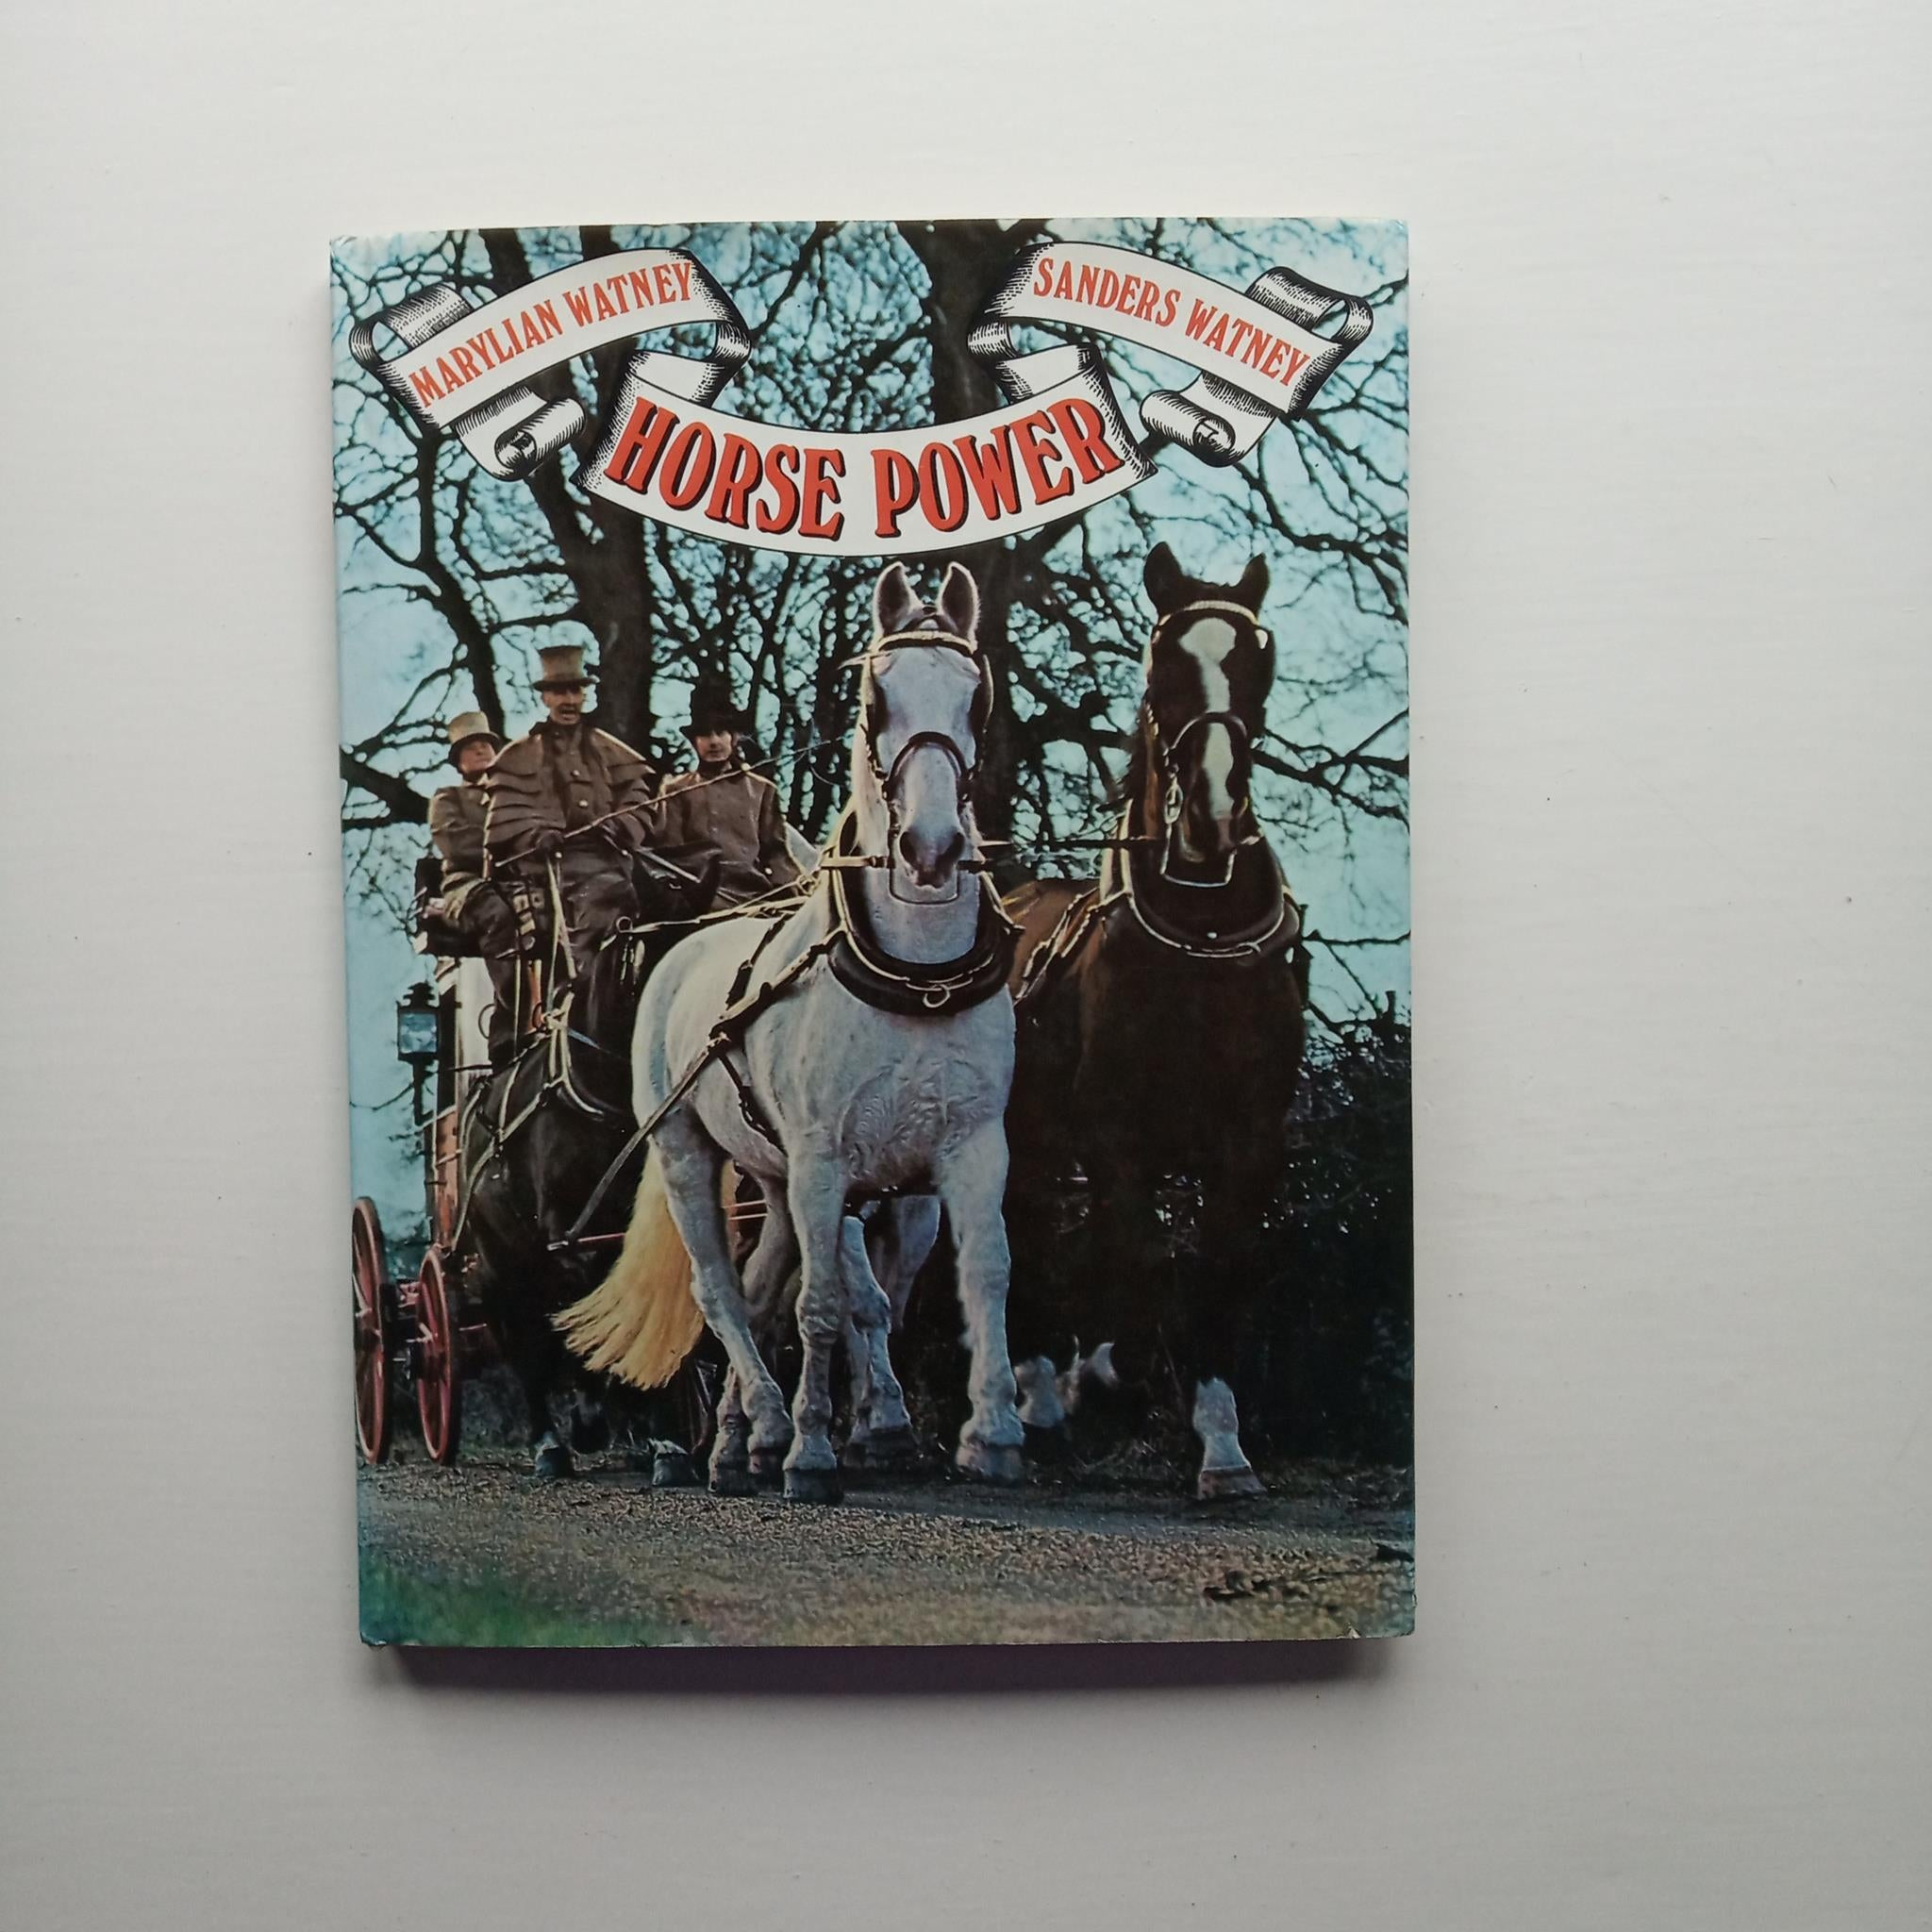 Horse Power by Marylian and Sanders Watney